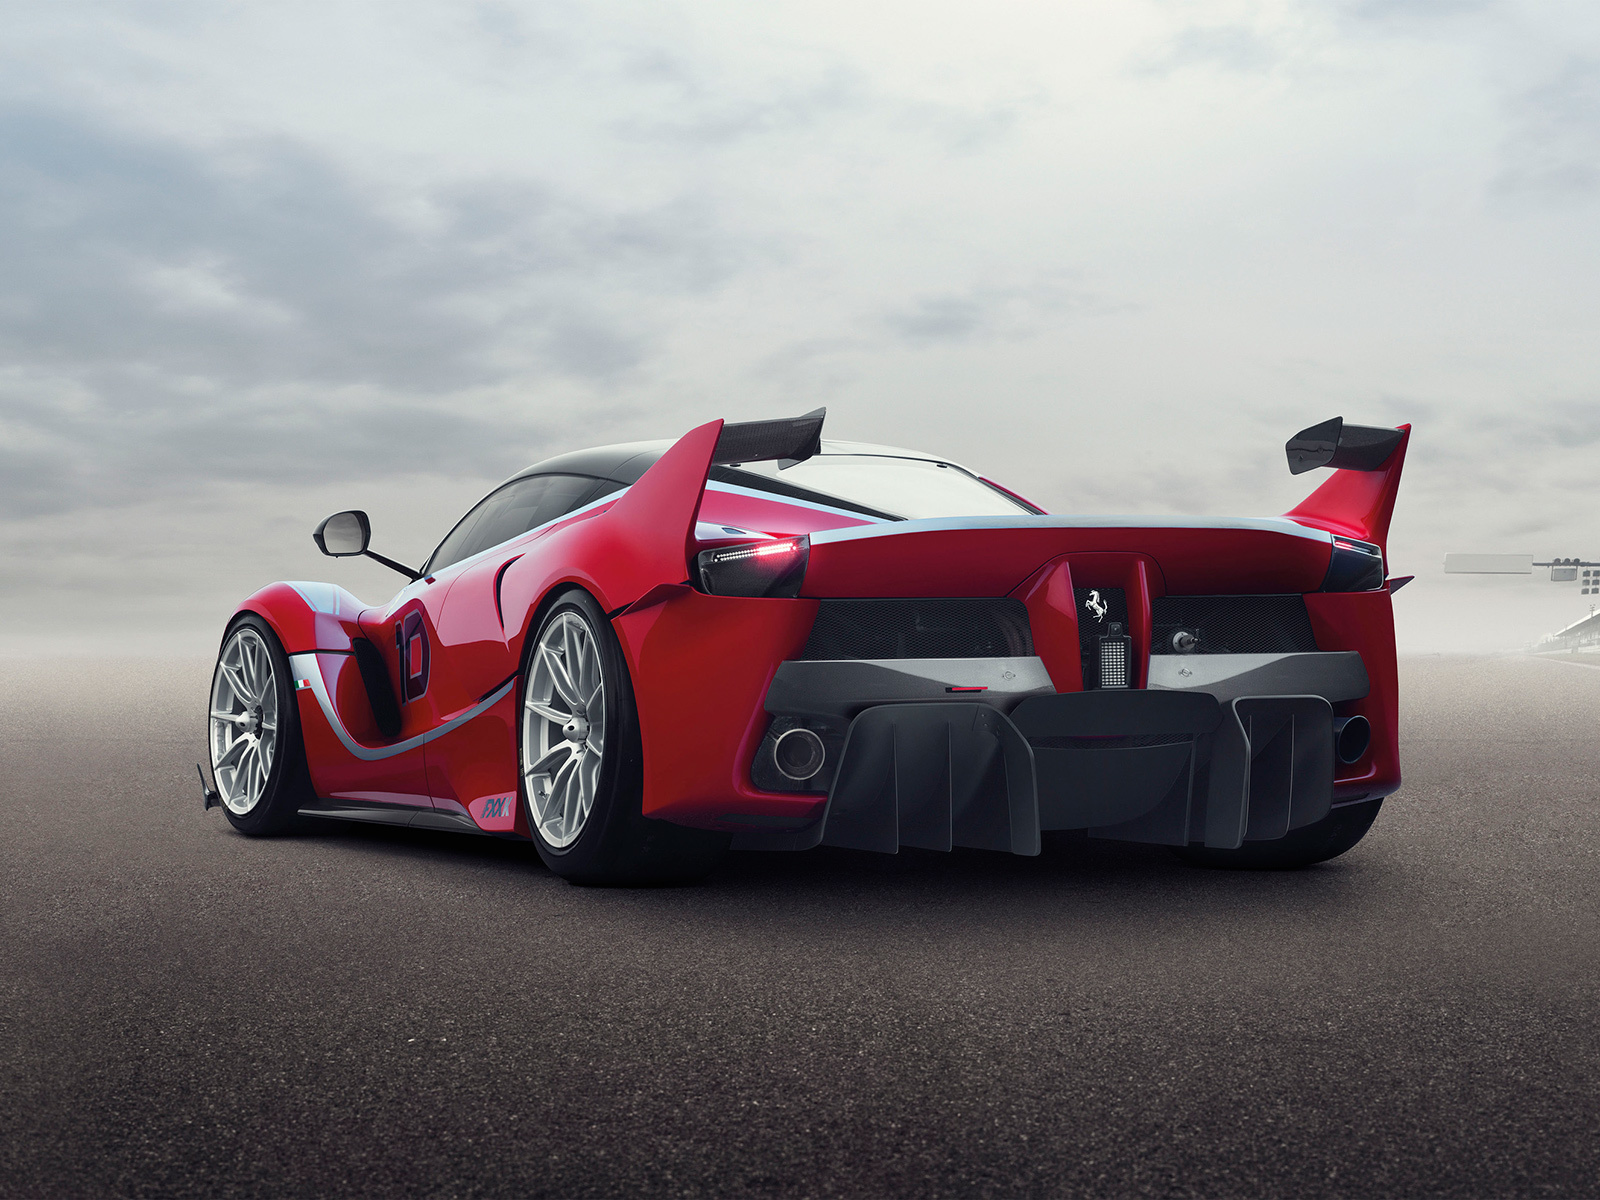 Ferrari FXX K HD Wallpaper